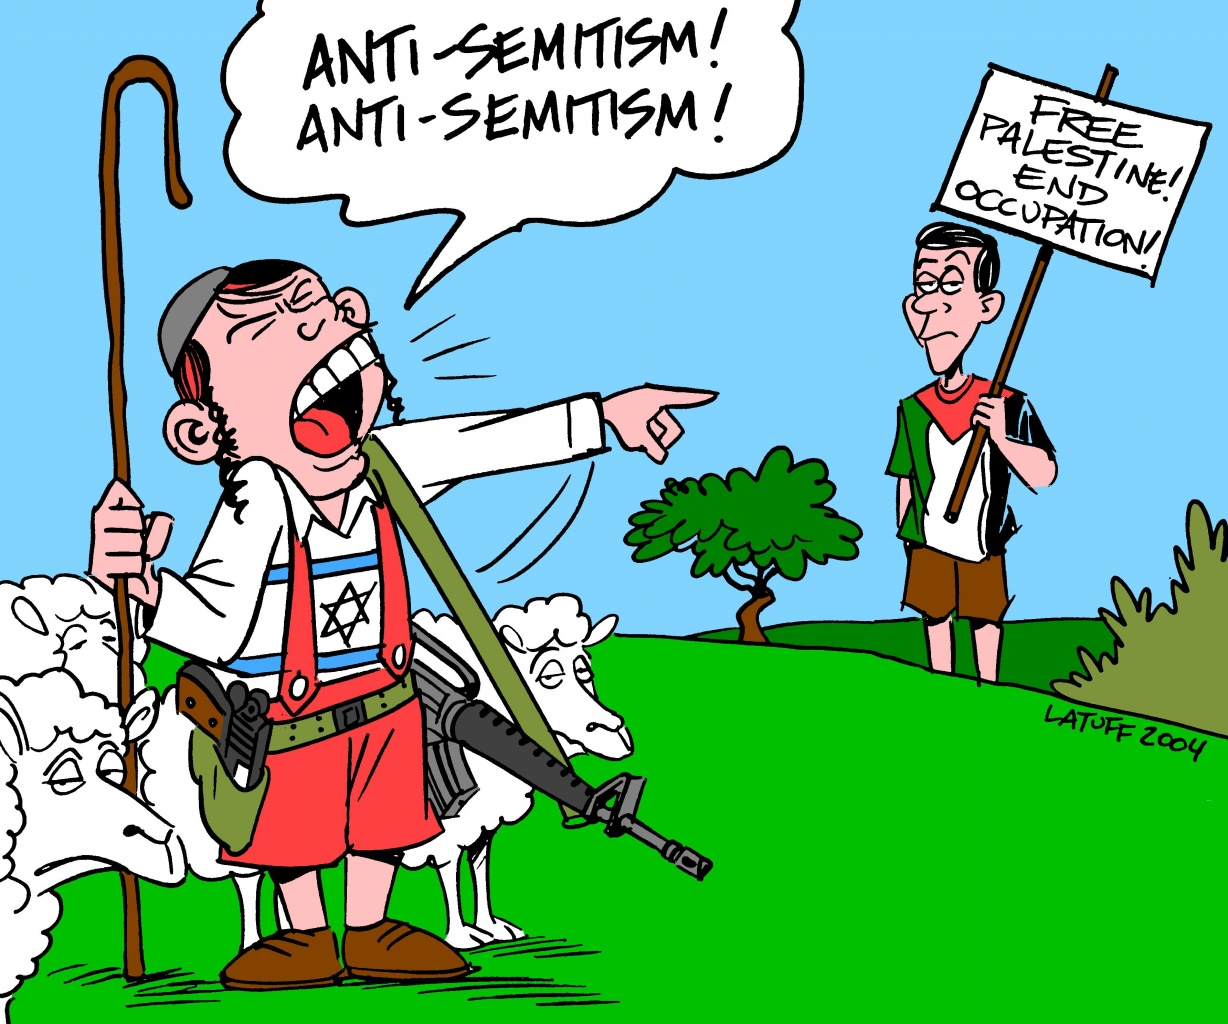 Latuff-cartoon-3